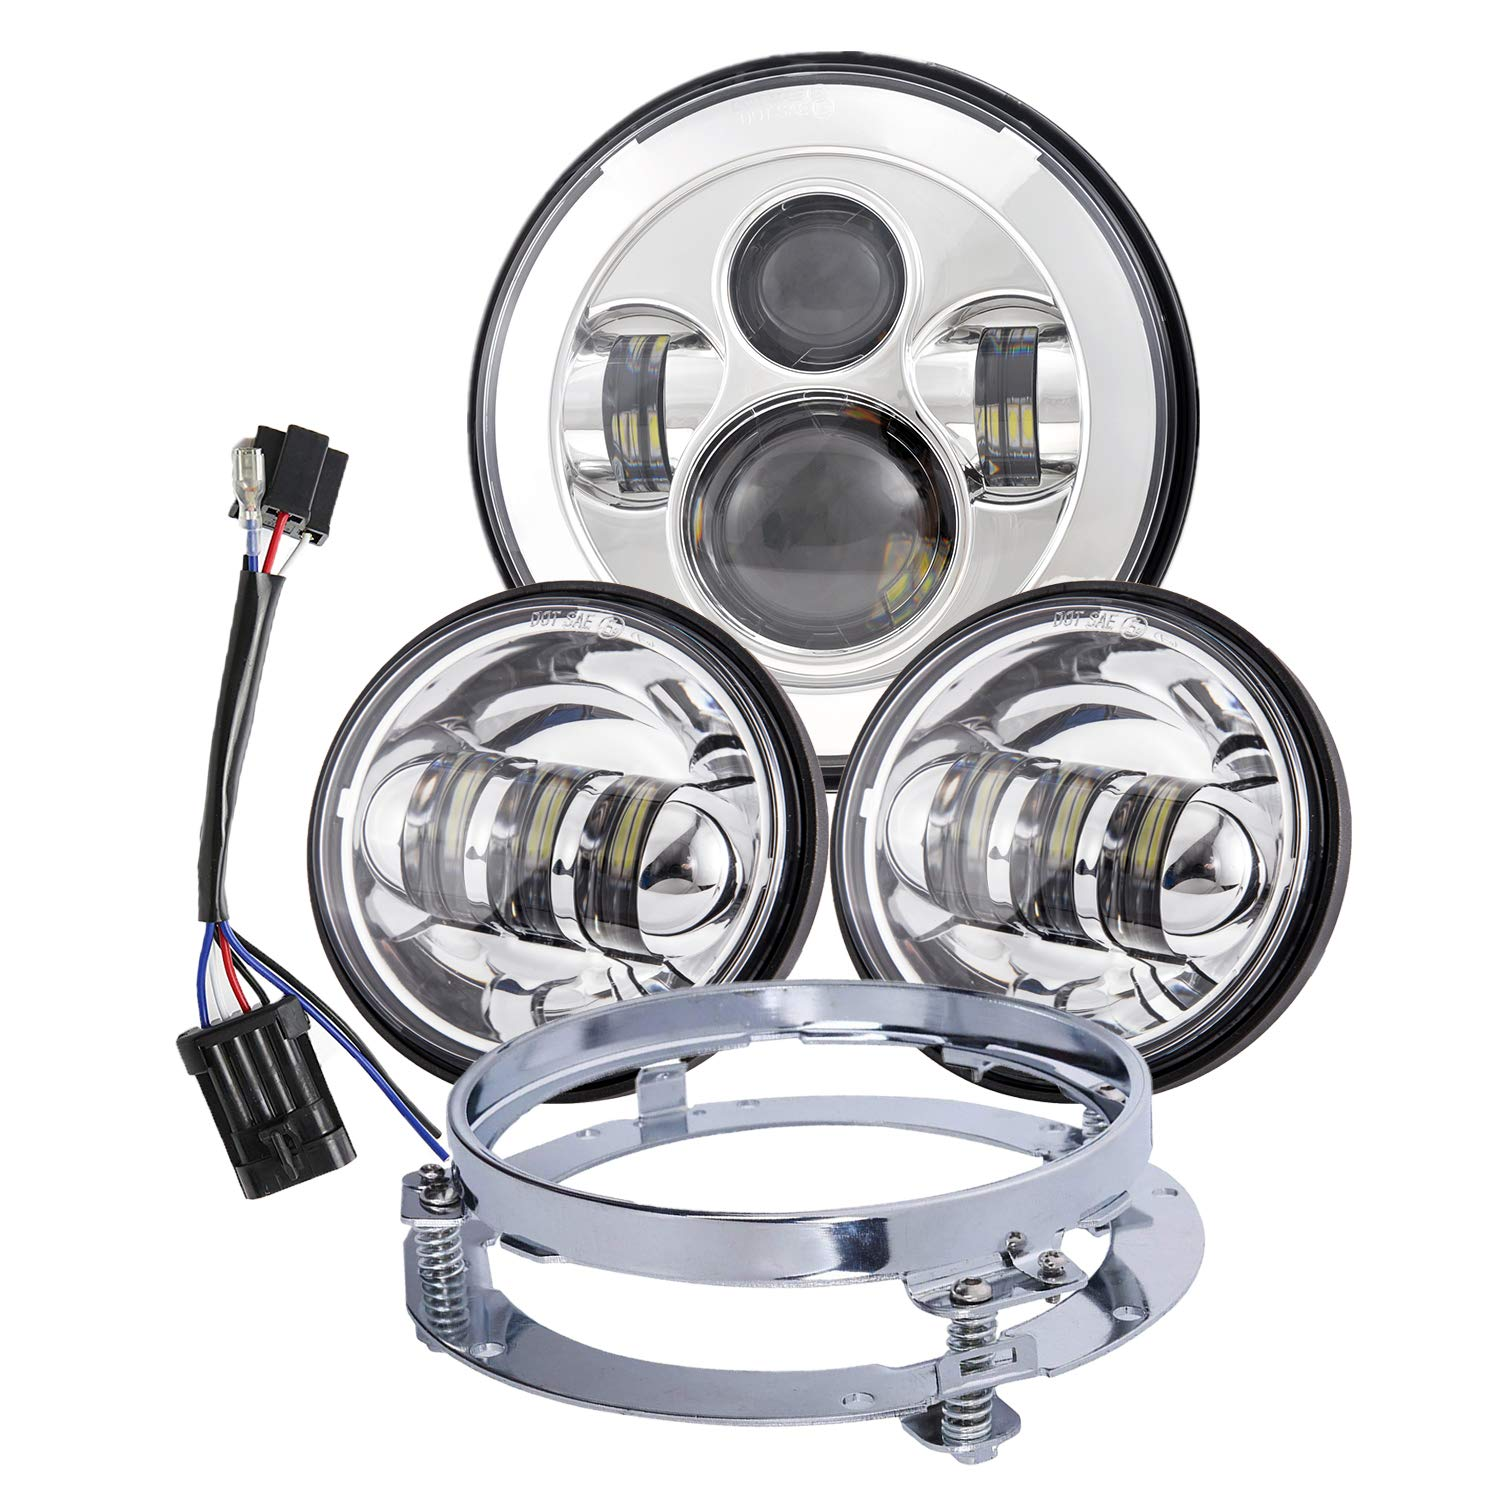 LX-LIGHT-Dot Approved Chrome 7inch LED headlight for Harley Motorcycles